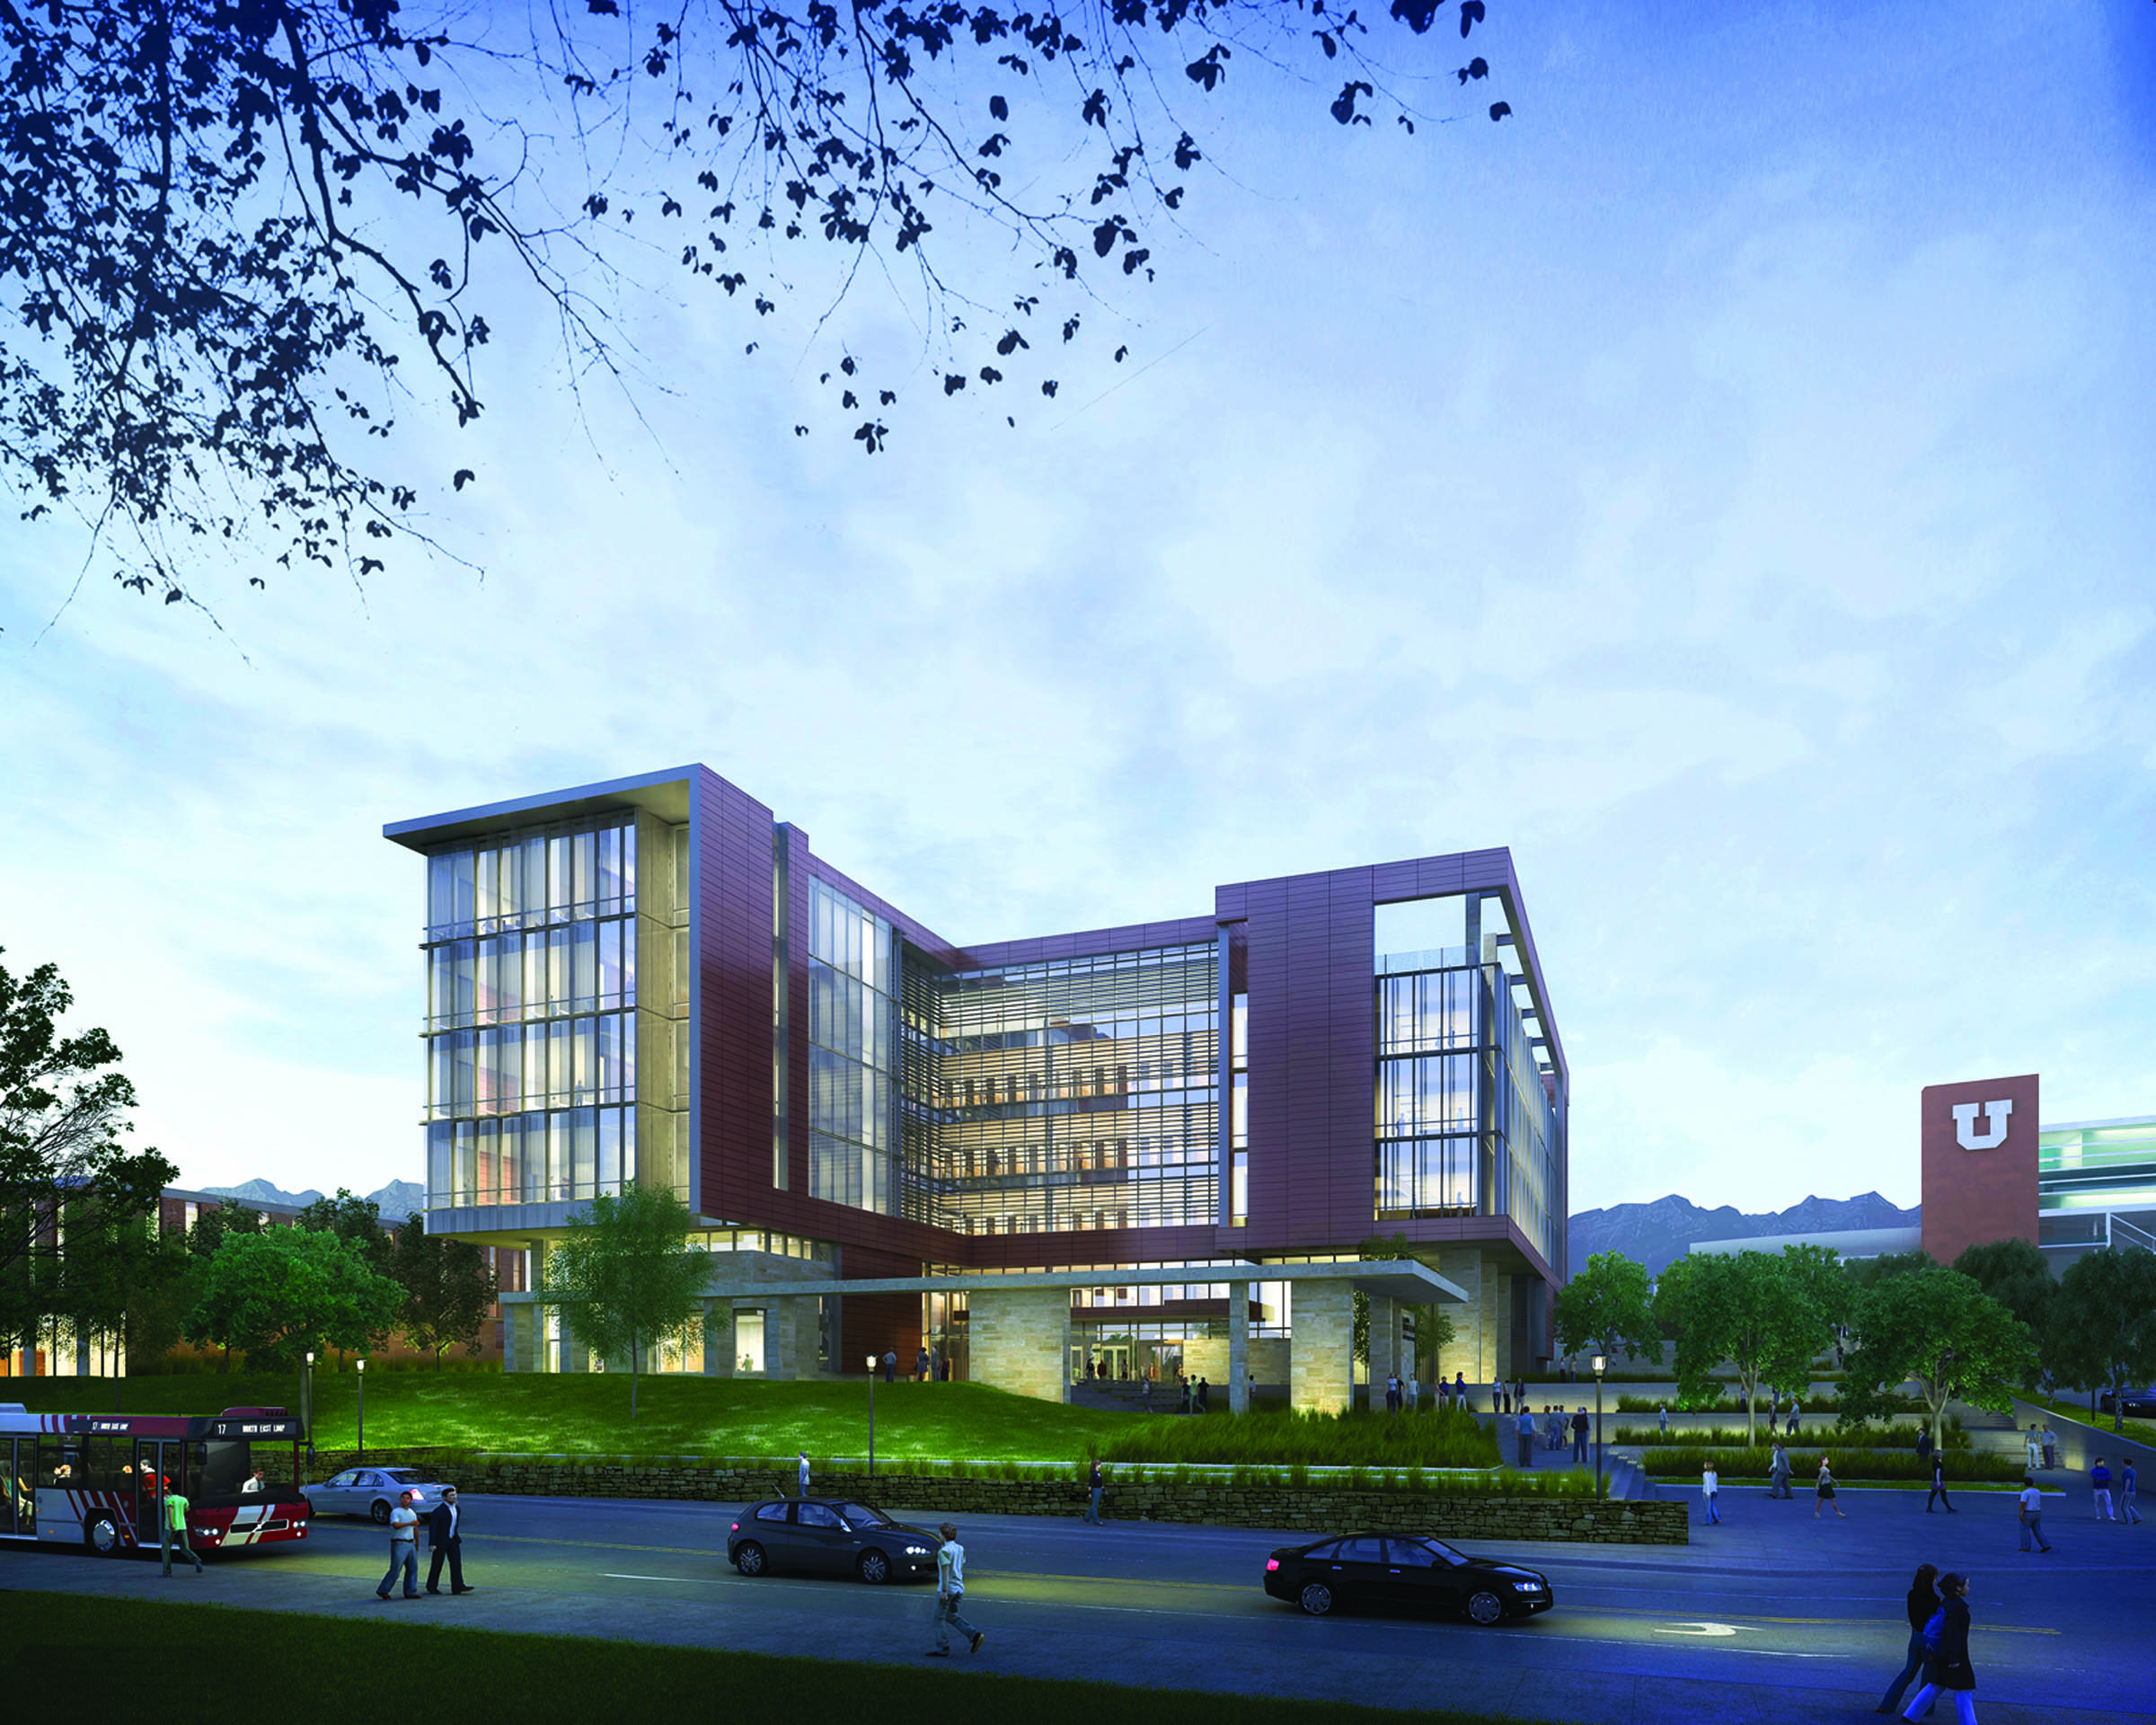 Rendering of the new S.J. Quinney College of Law building. The college recently received a $4.5 million gift from the Alternative Visions Fund to include sustainable features in the new building.